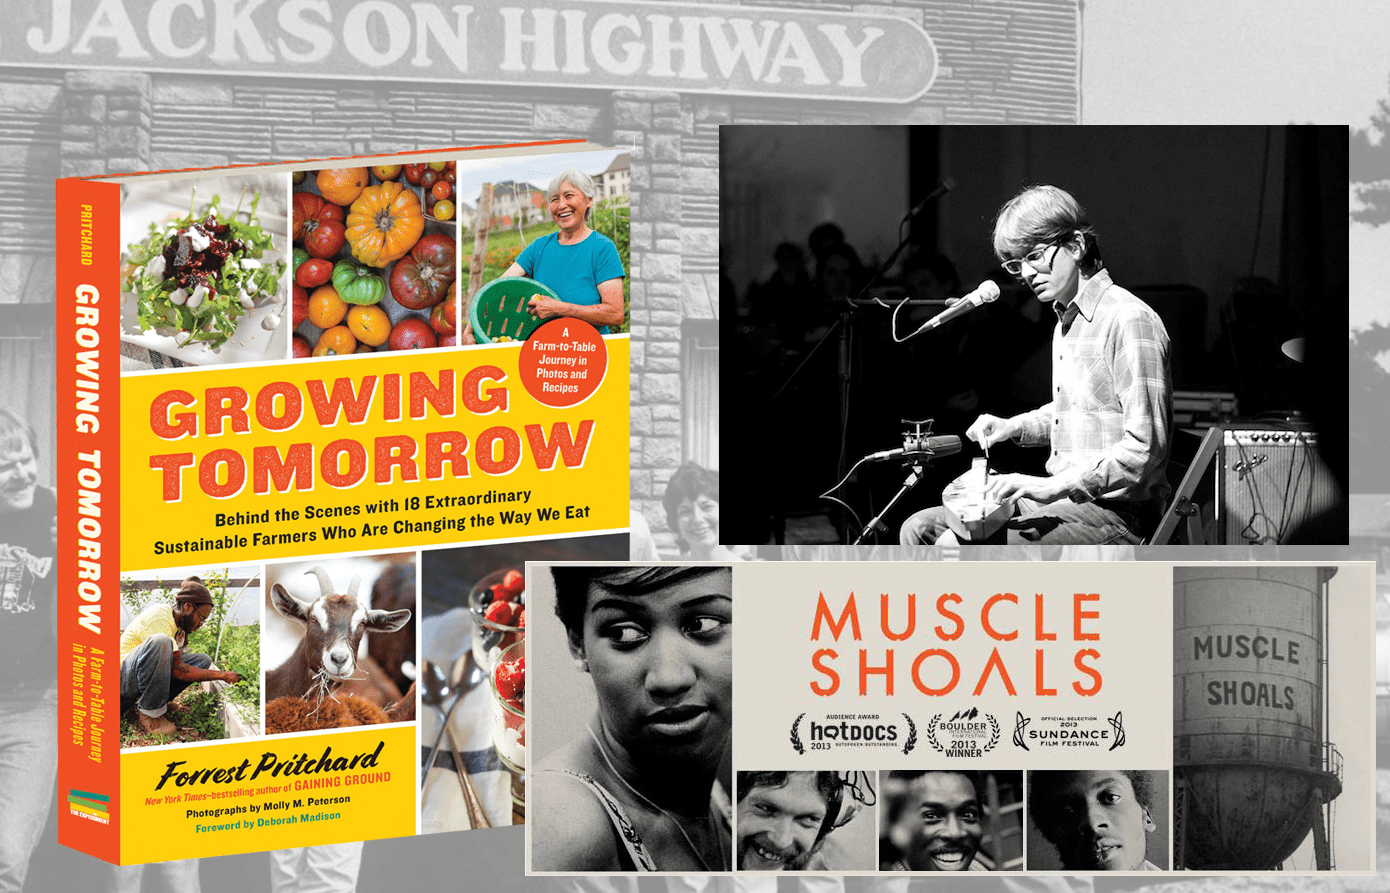 """Some of the """"best of"""" selections of the new Rural Roundtable, a co-production of the Daily Yonder and National Rural Assembly: the book by Forrest Pritchard, the documentary on the rock and roll history of Muscle Shoals by director Greg 'Freddy' Camalier, and (top right)  musician Joe O'Connell of Elephant Micah."""